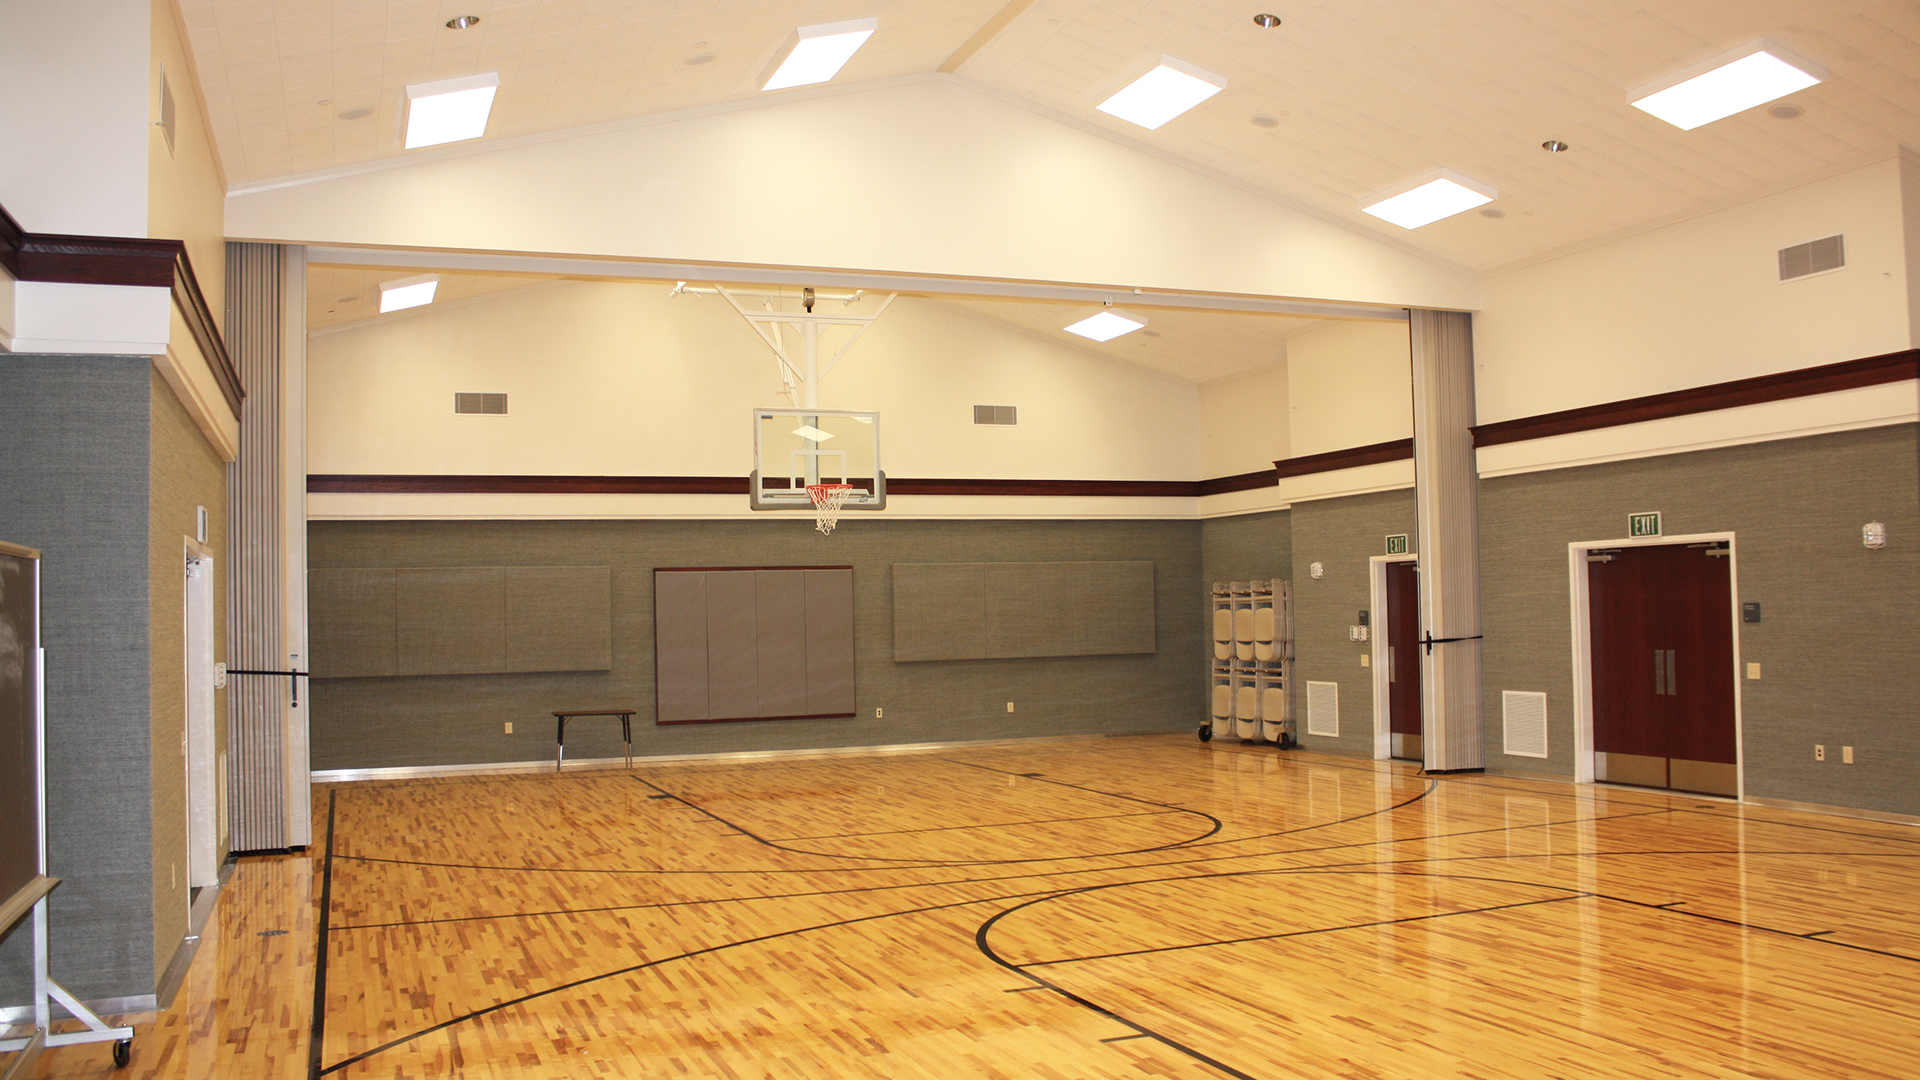 LDS HELOTES BASKETBALL COURT